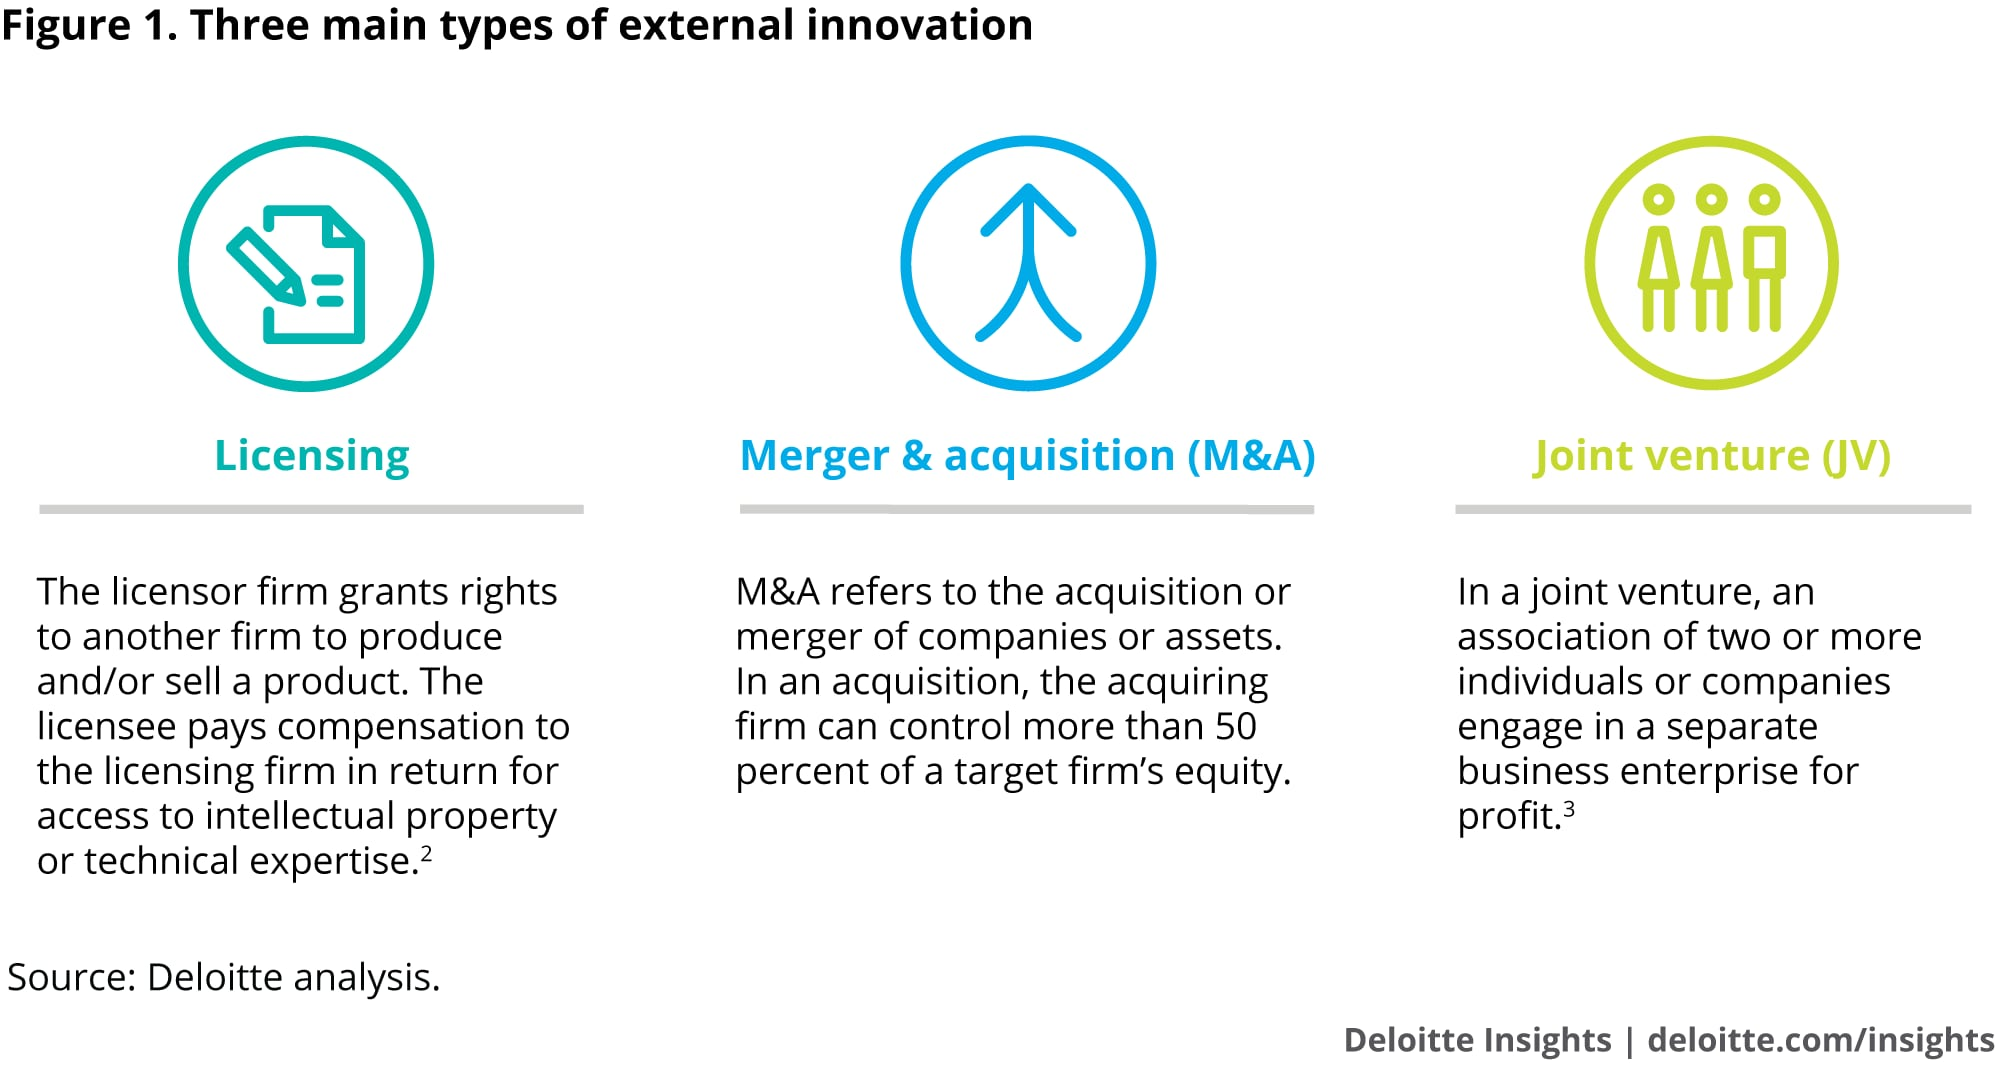 Three main types of external innovation